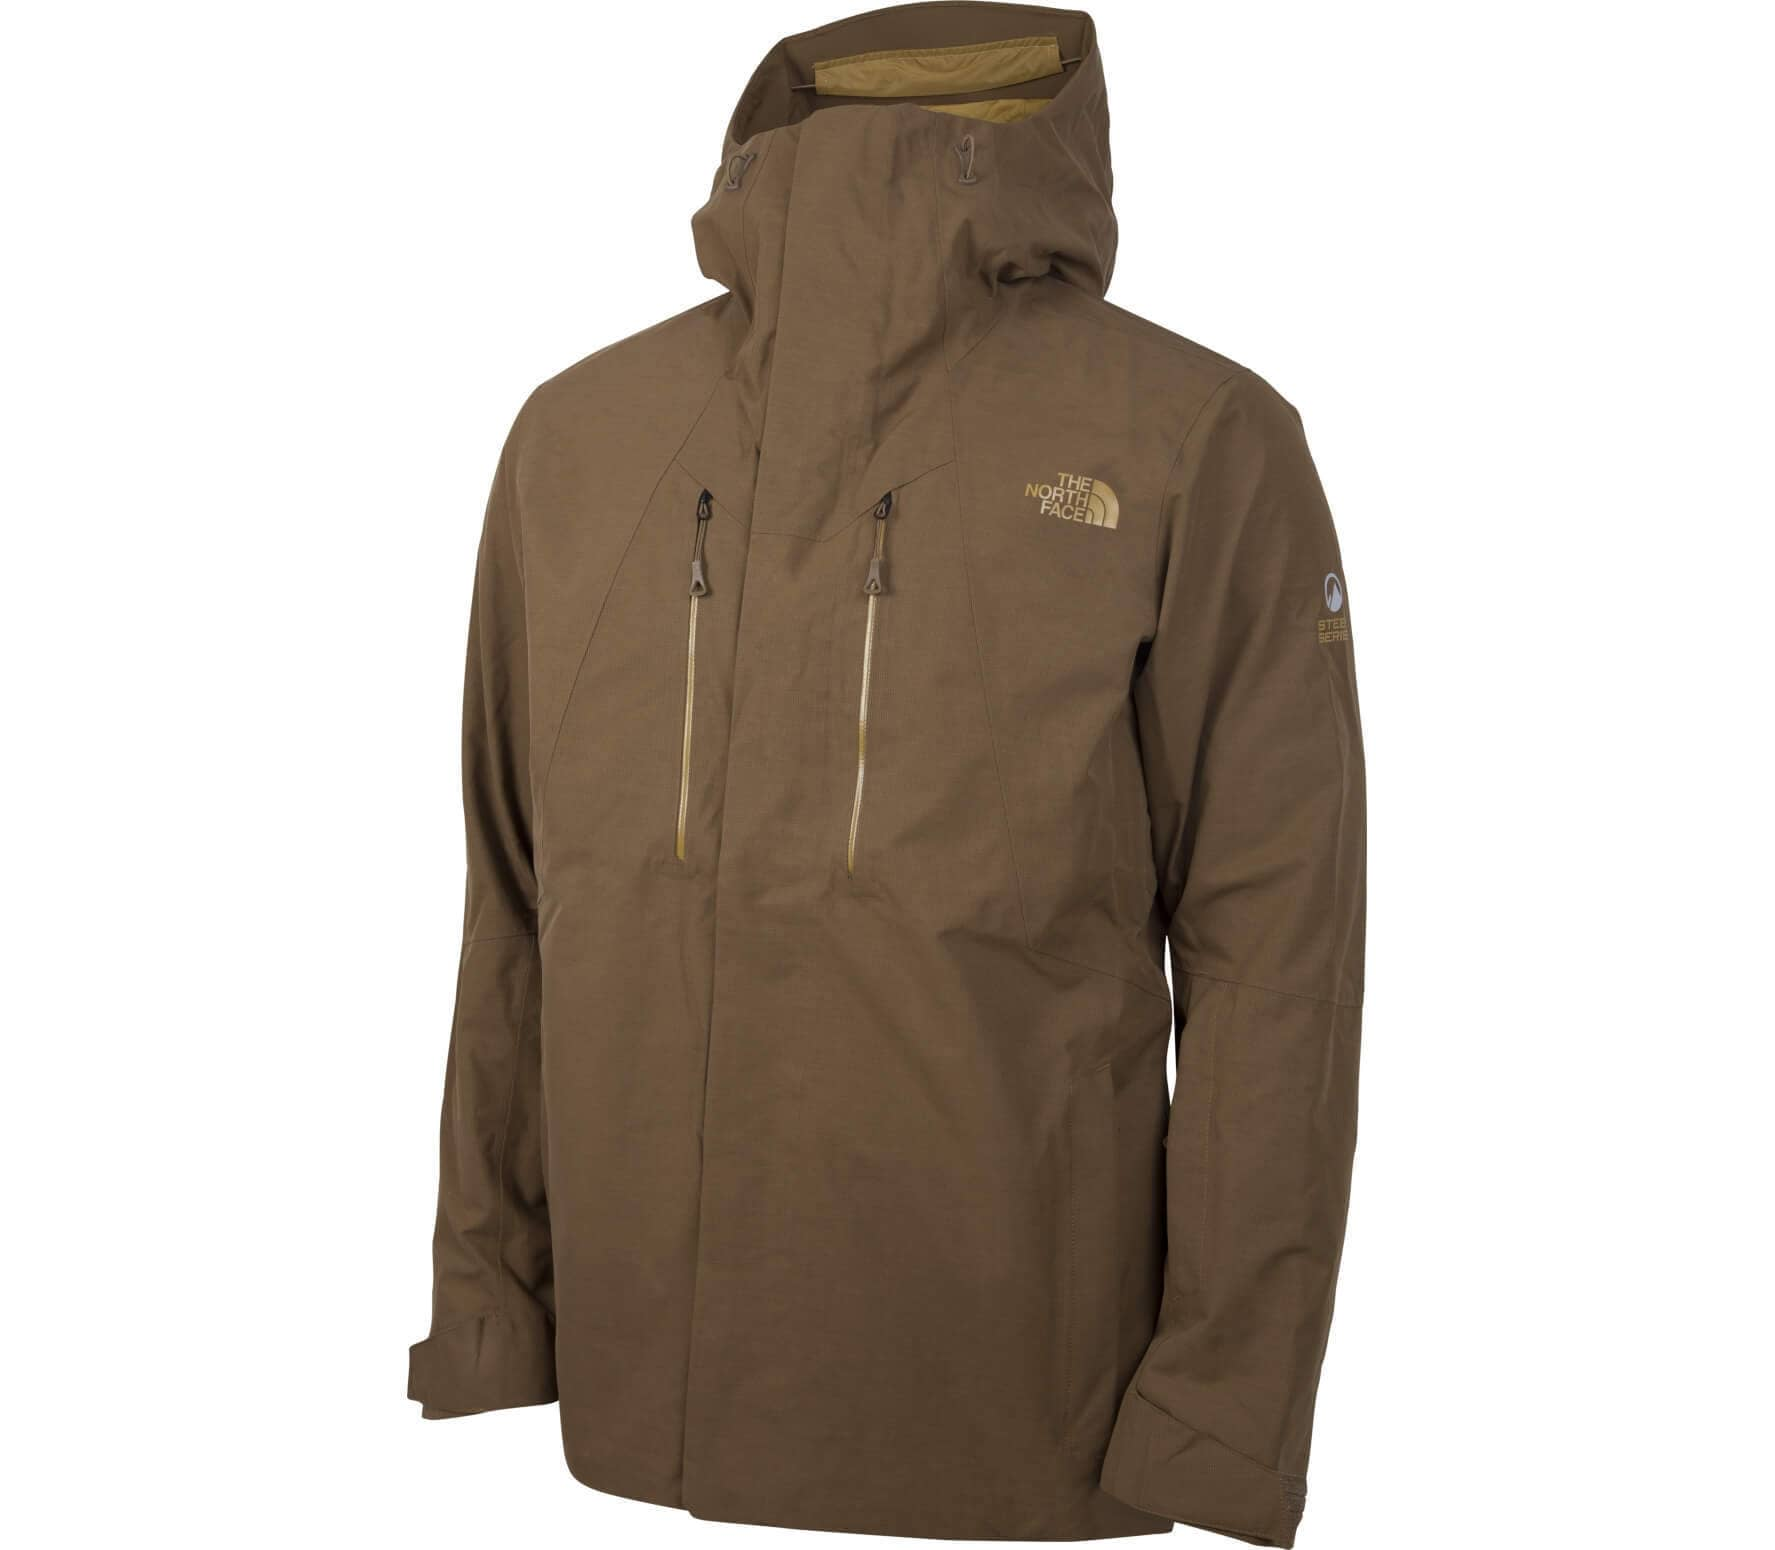 Hombre De Face Esquí marrón Para Nfz Gore Tex Chaqueta The North Yqz4R4